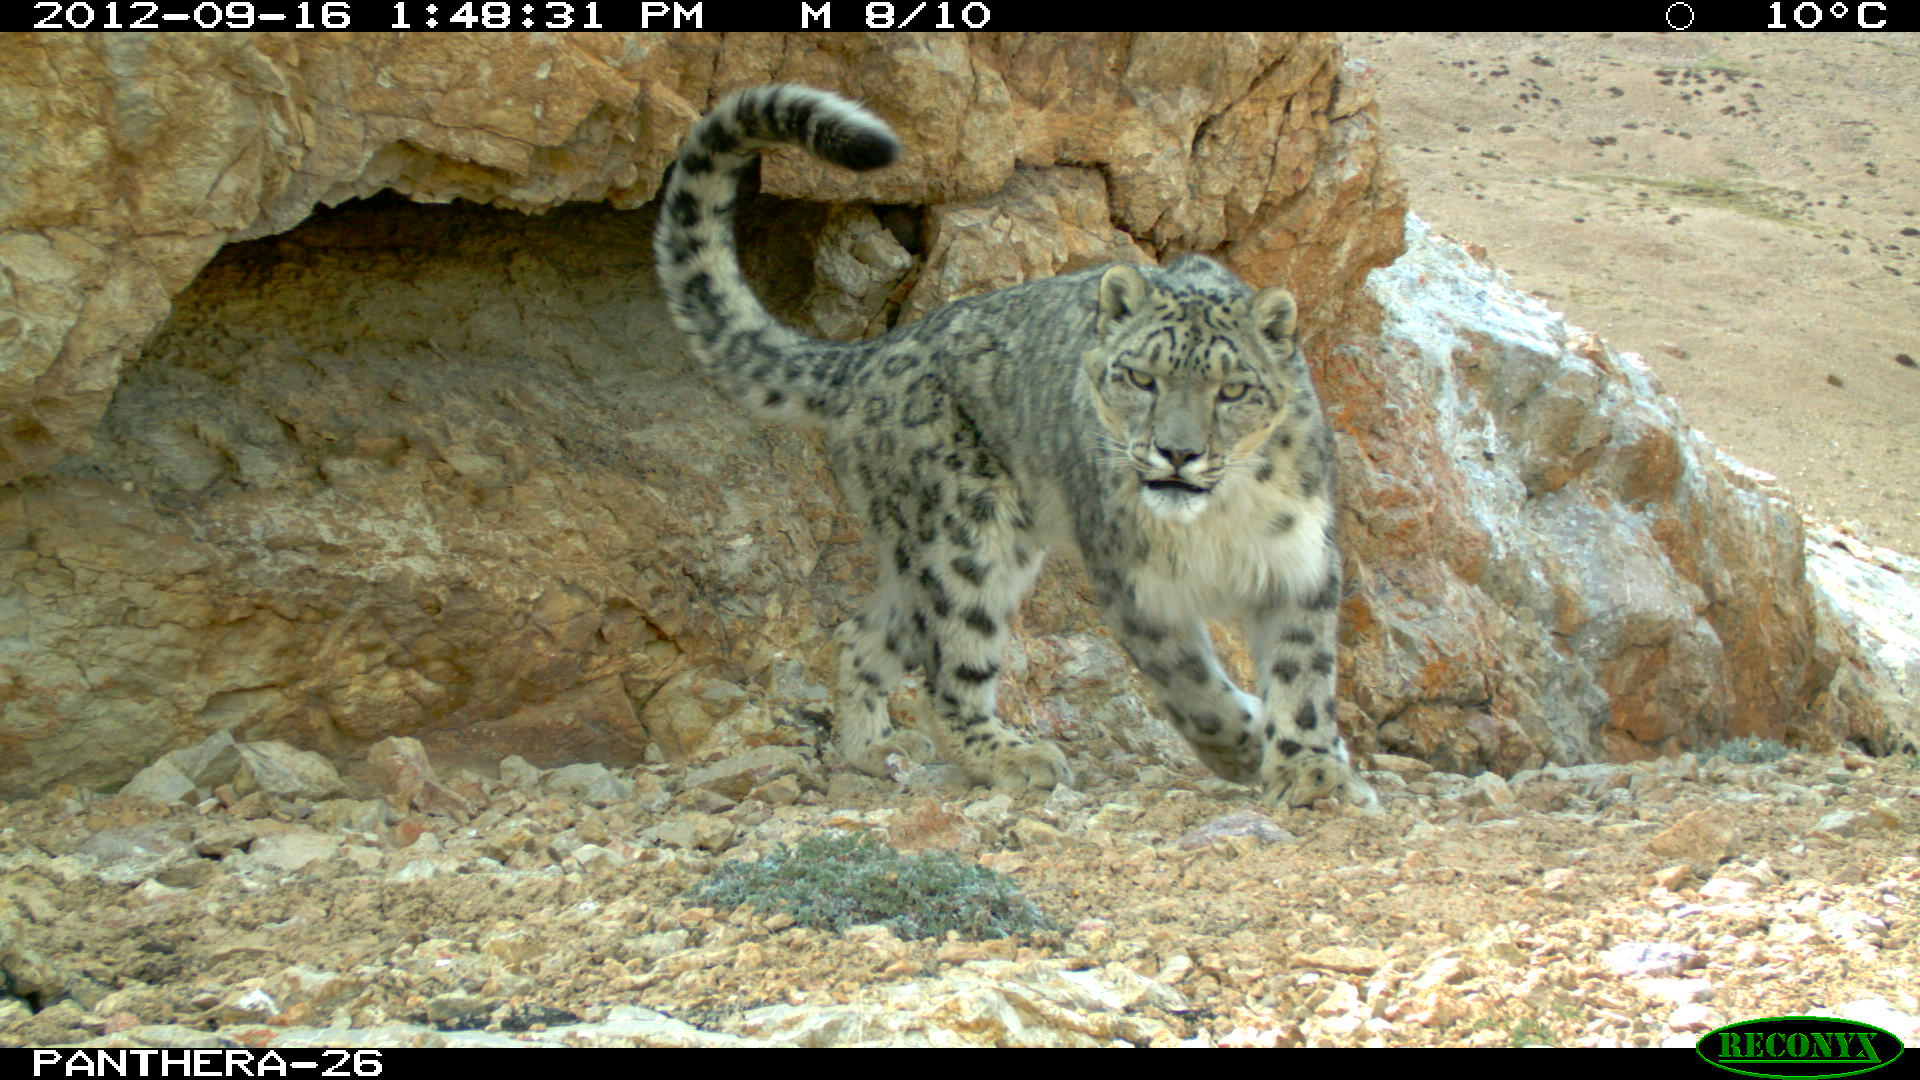 Snow leopard (Panthera uncia) caught by camera trap in Jarty Gumbez, Murghab Conservancy—photograph © Kachel/Panthera/AoS/UD